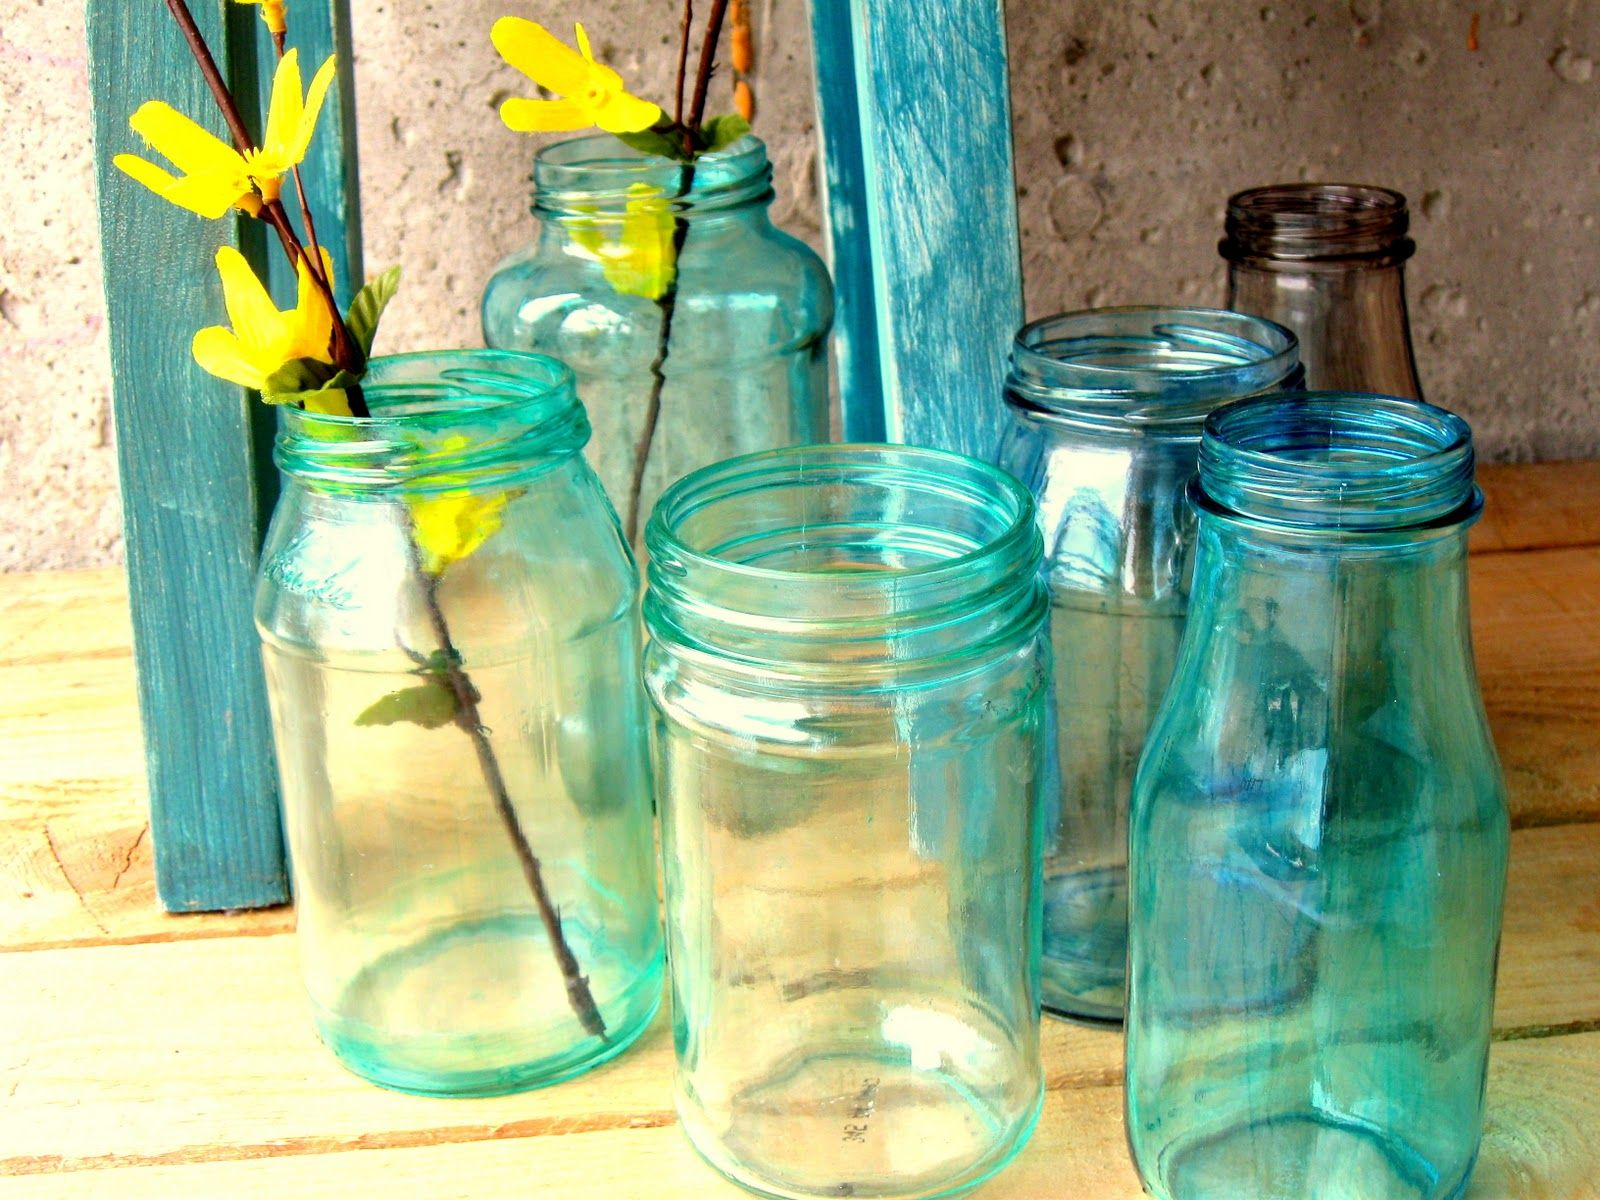 Do it yourself colored glass jars elmers glue and food color via do it yourself colored glass jars elmers glue and food color via craftberry bush solutioingenieria Images